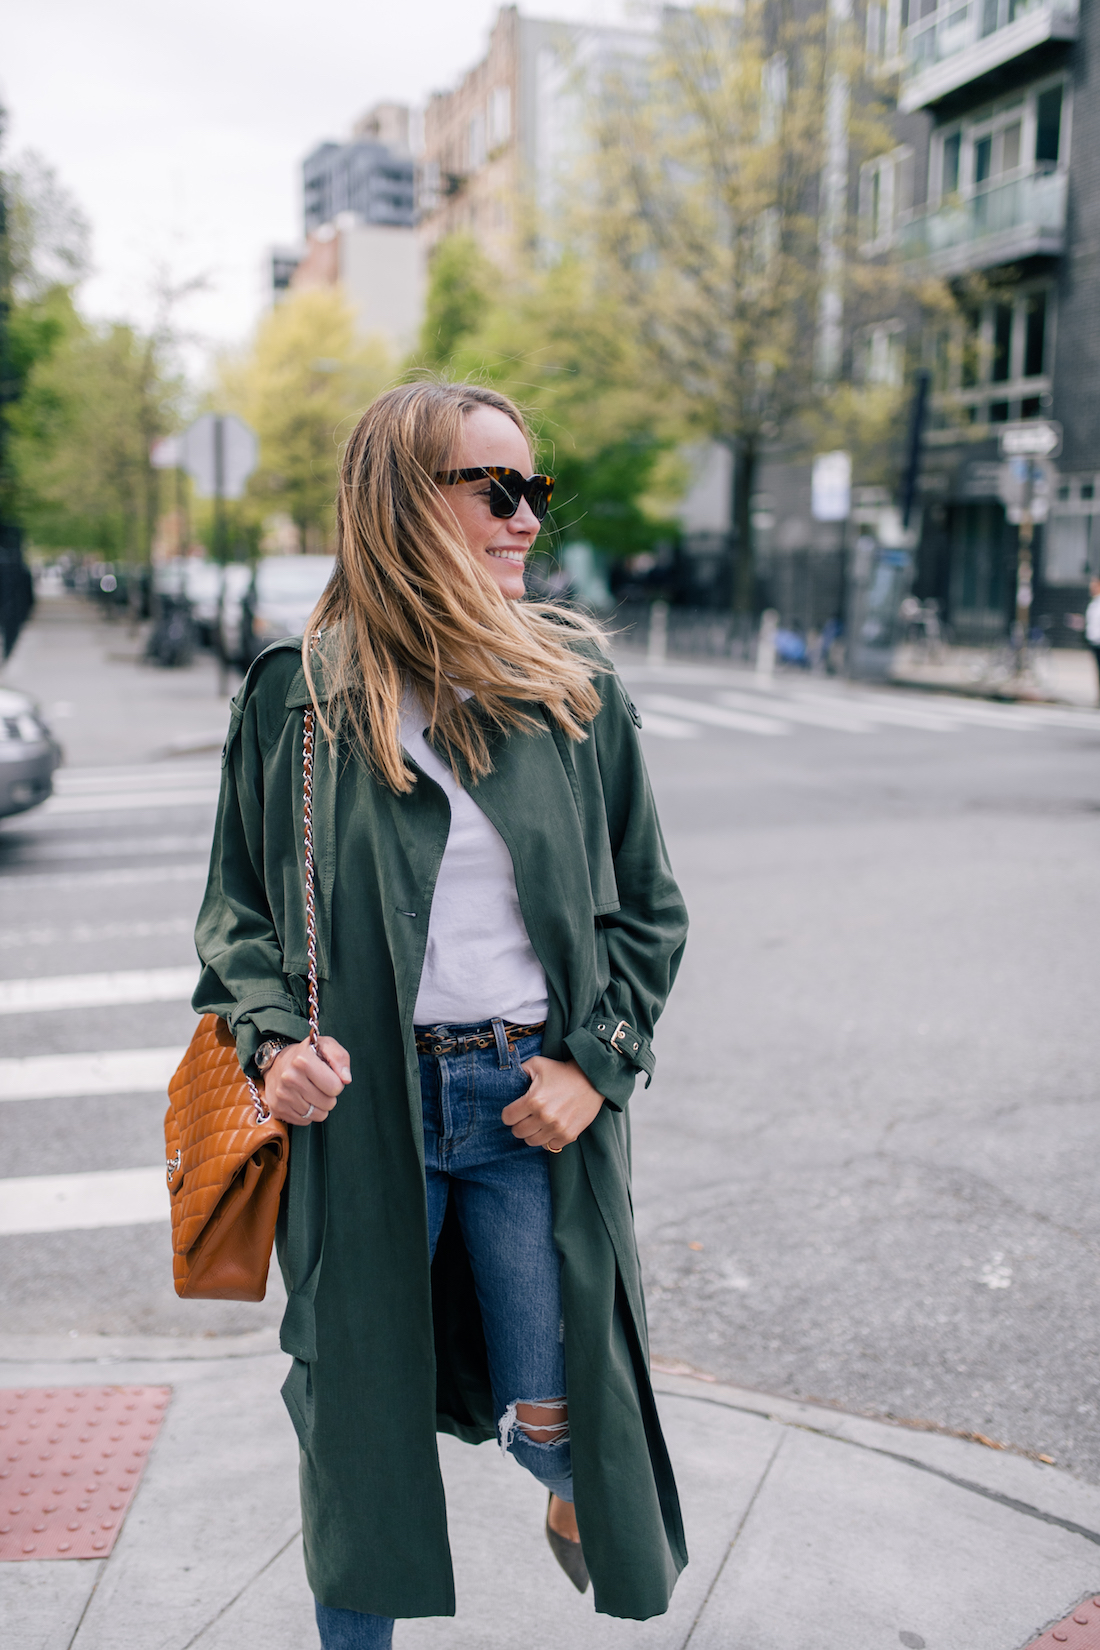 Grace Atwood is featuring a classic style outfit